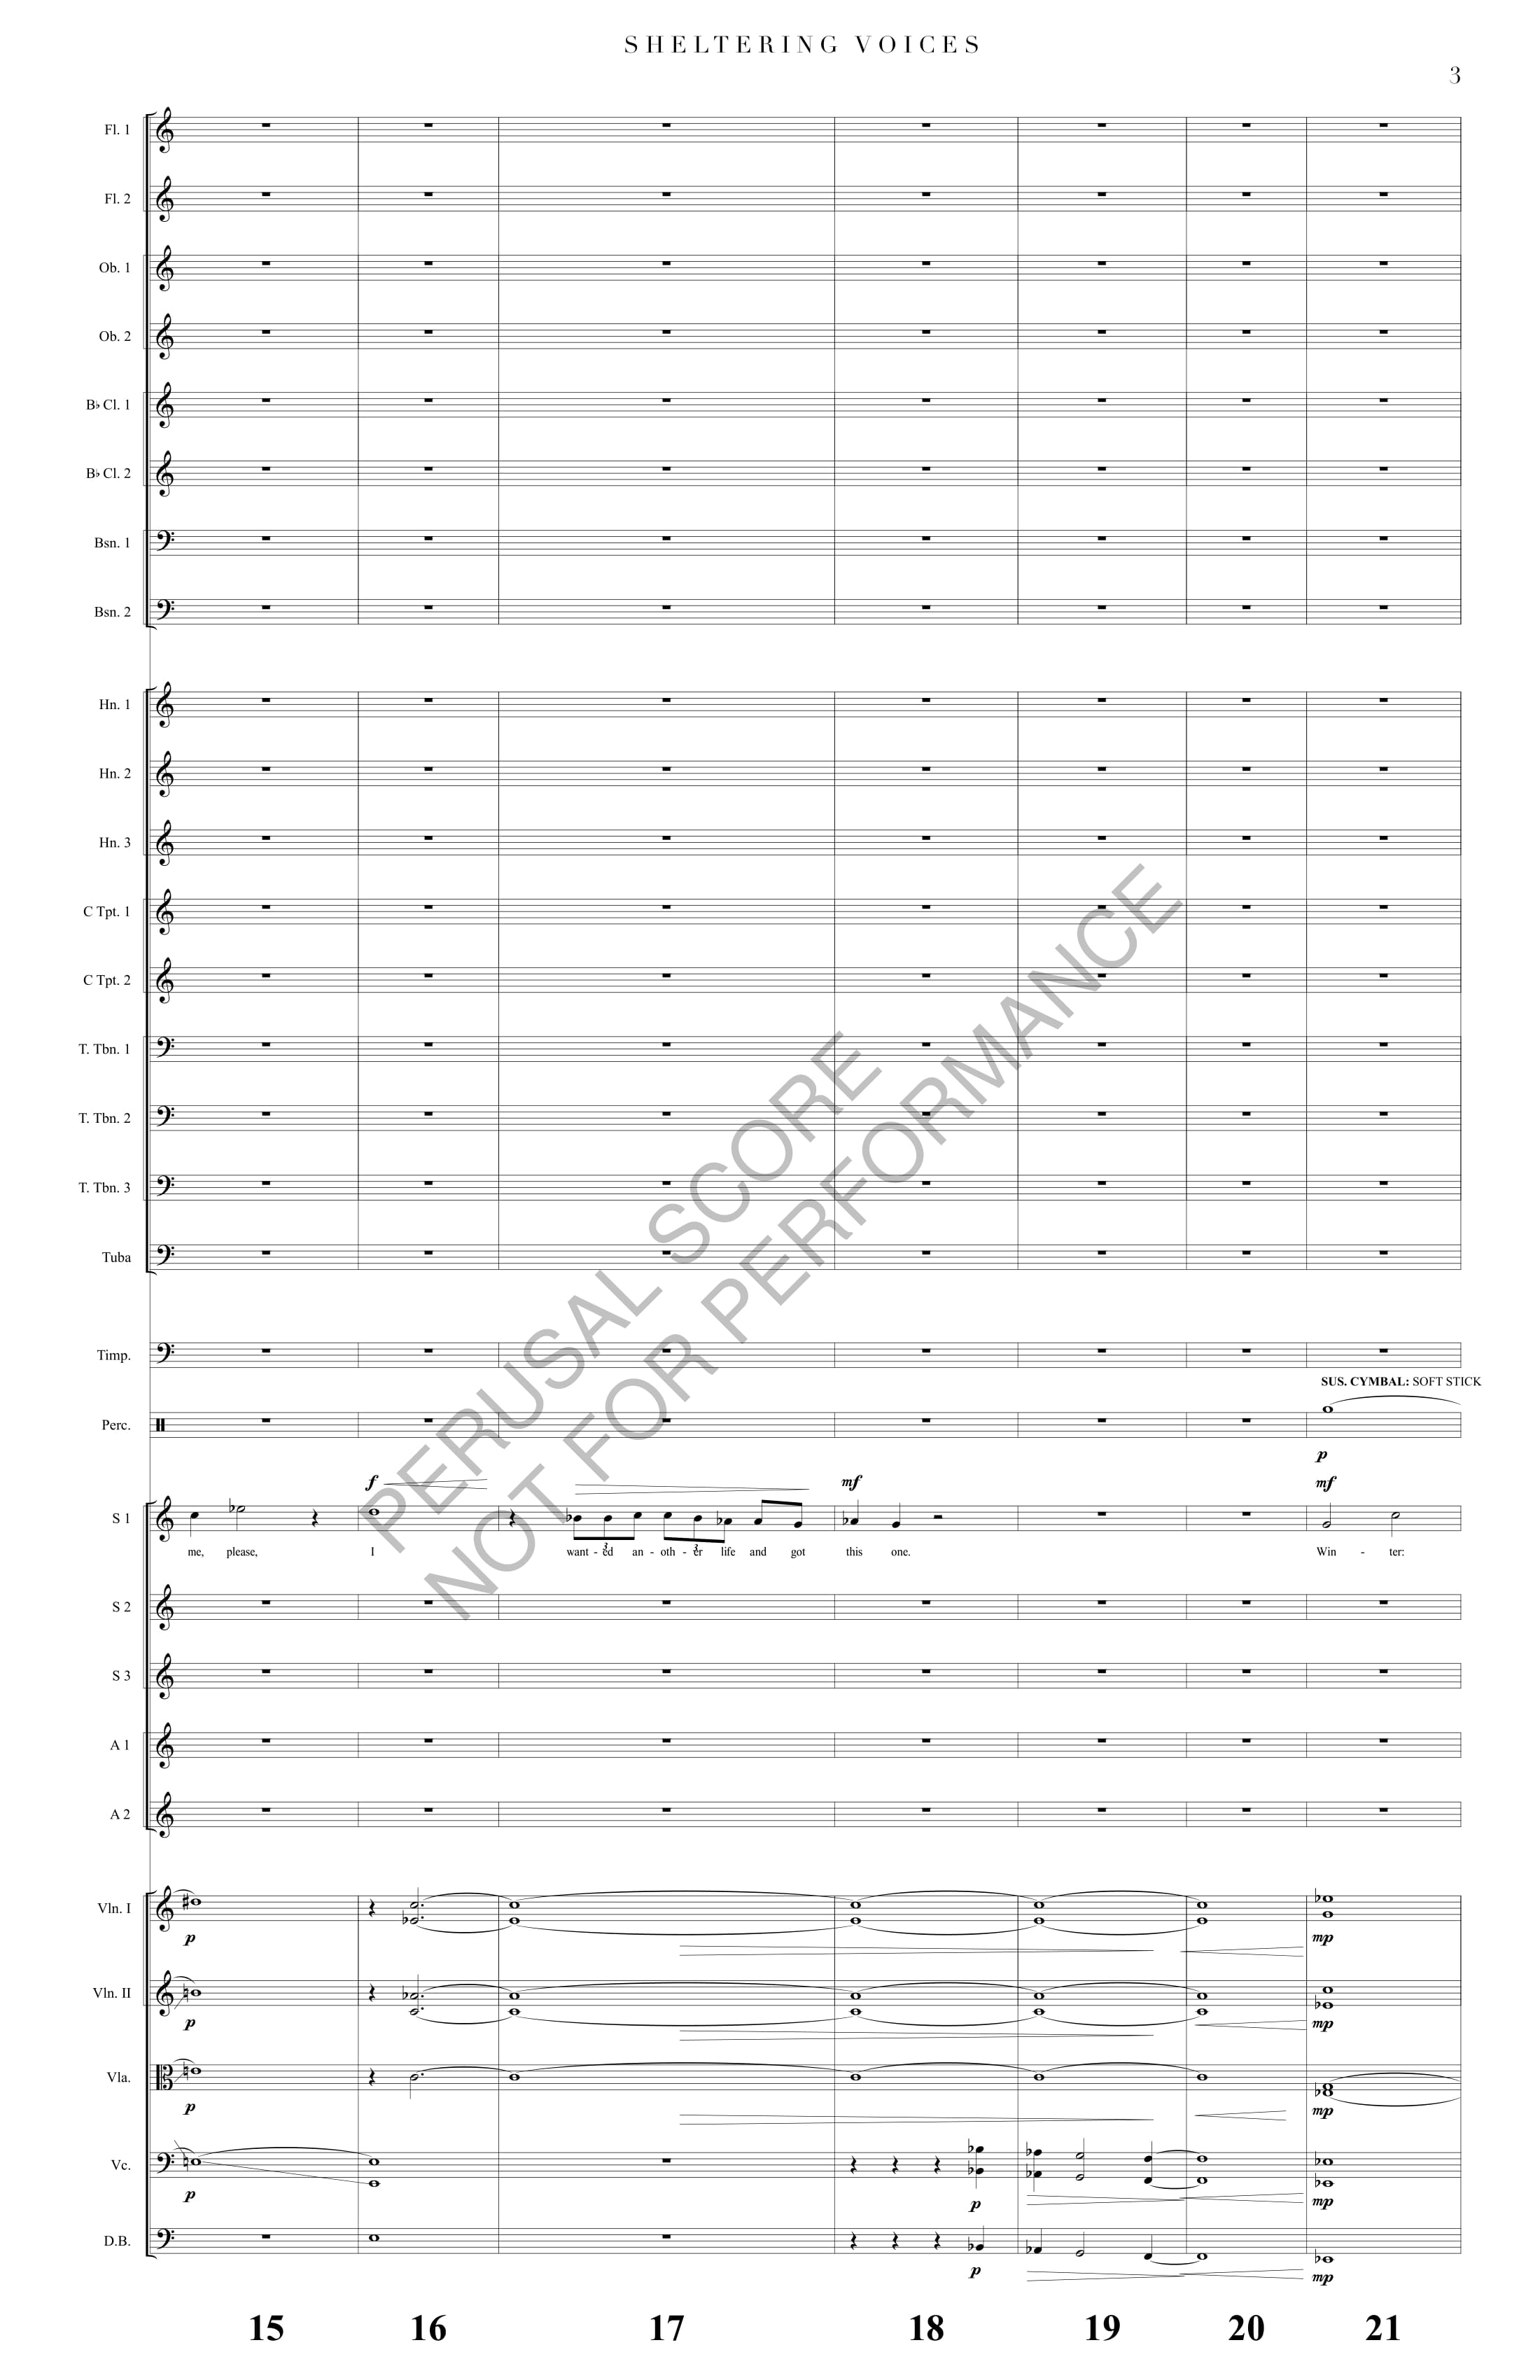 Boyd Sheltering Voices Score-watermark-11.jpg